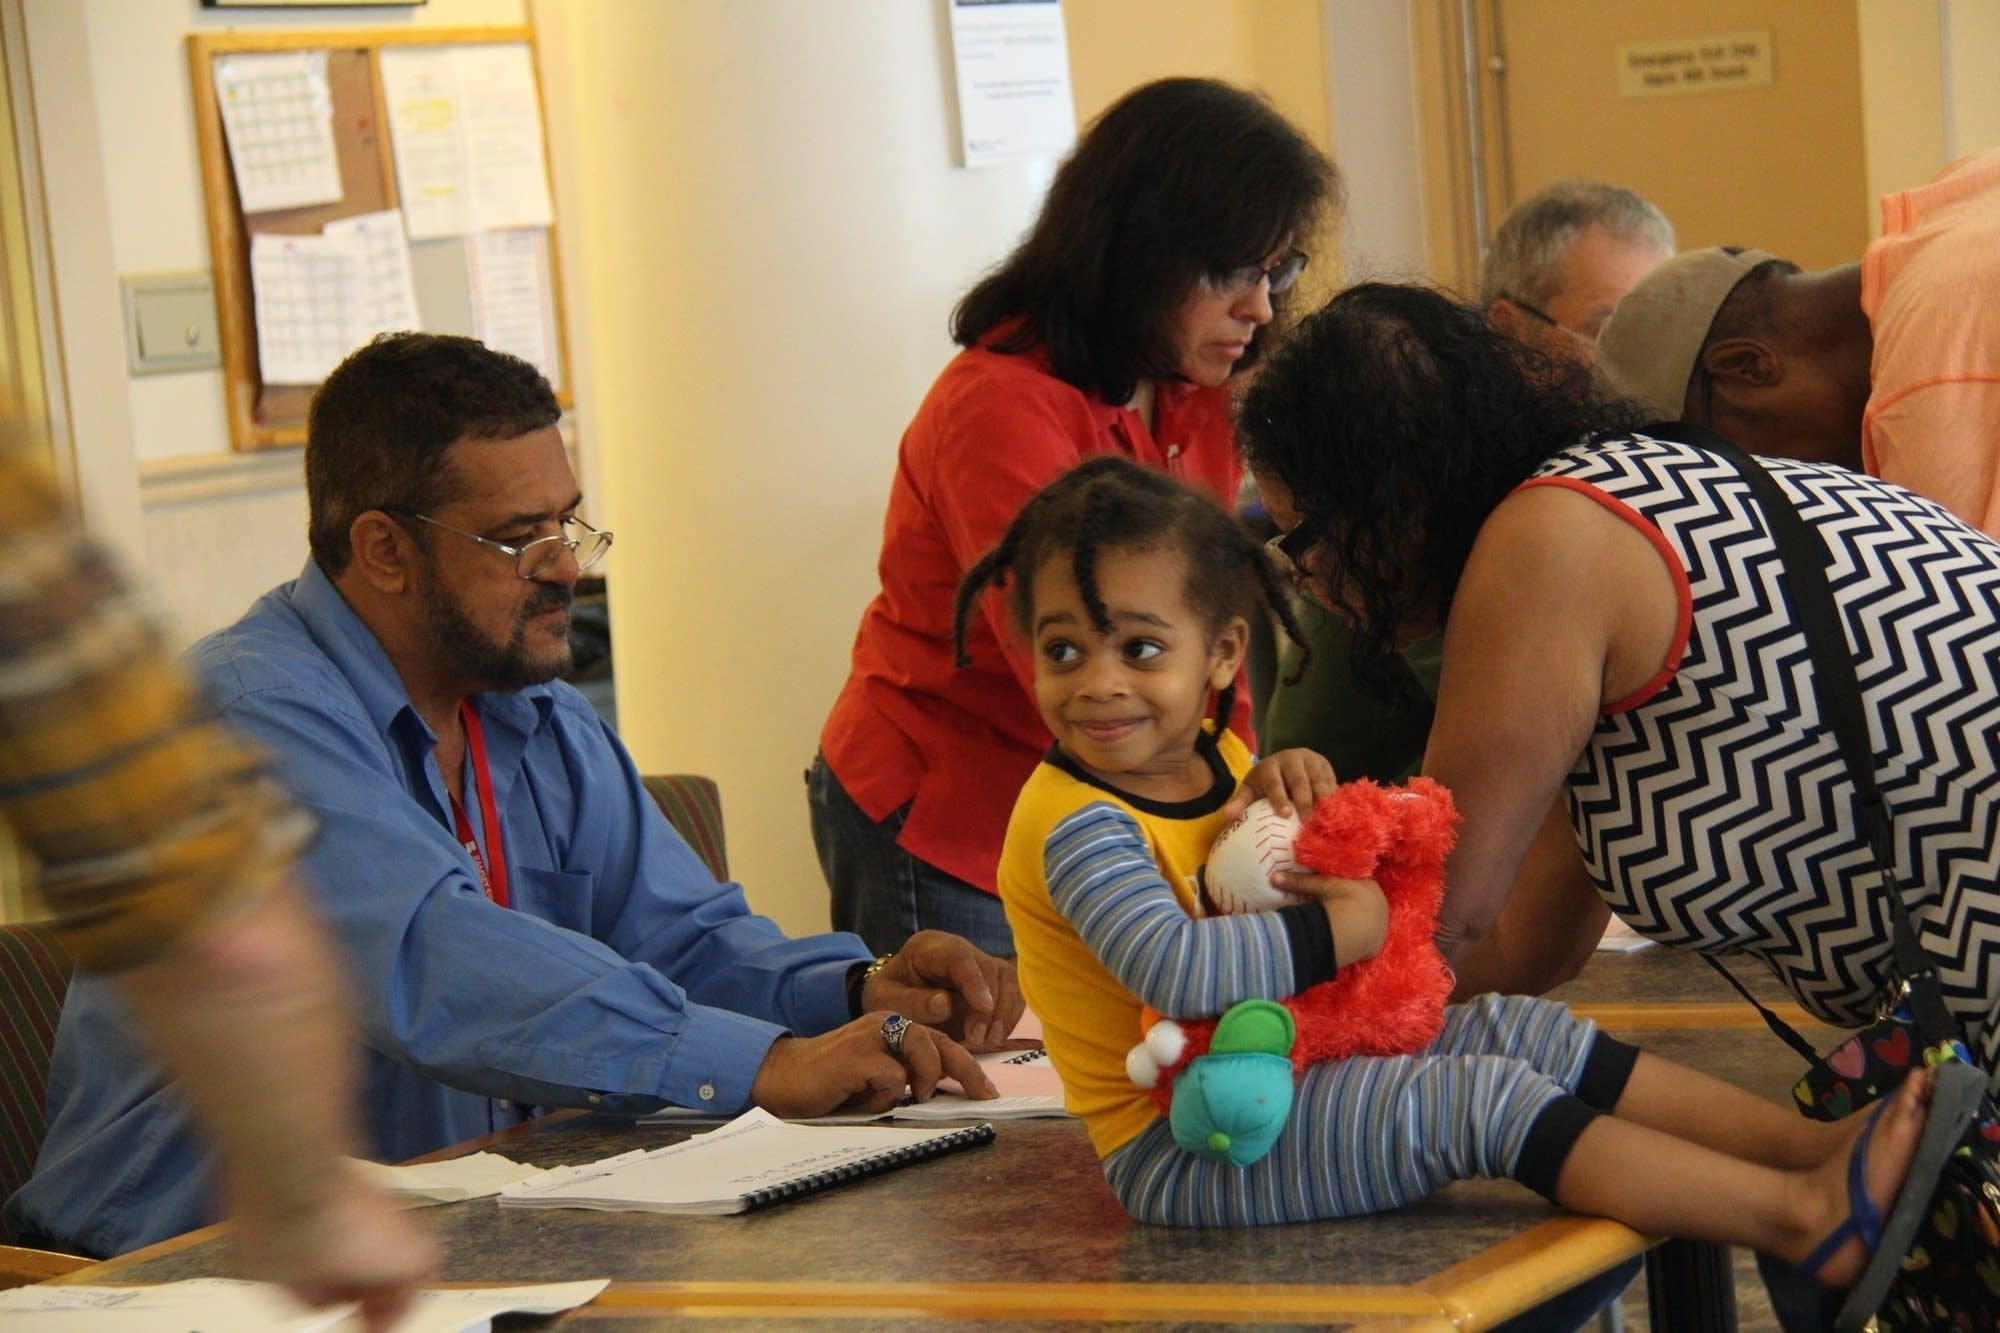 Two-year-old Victor came to the polling station in Frogtown.